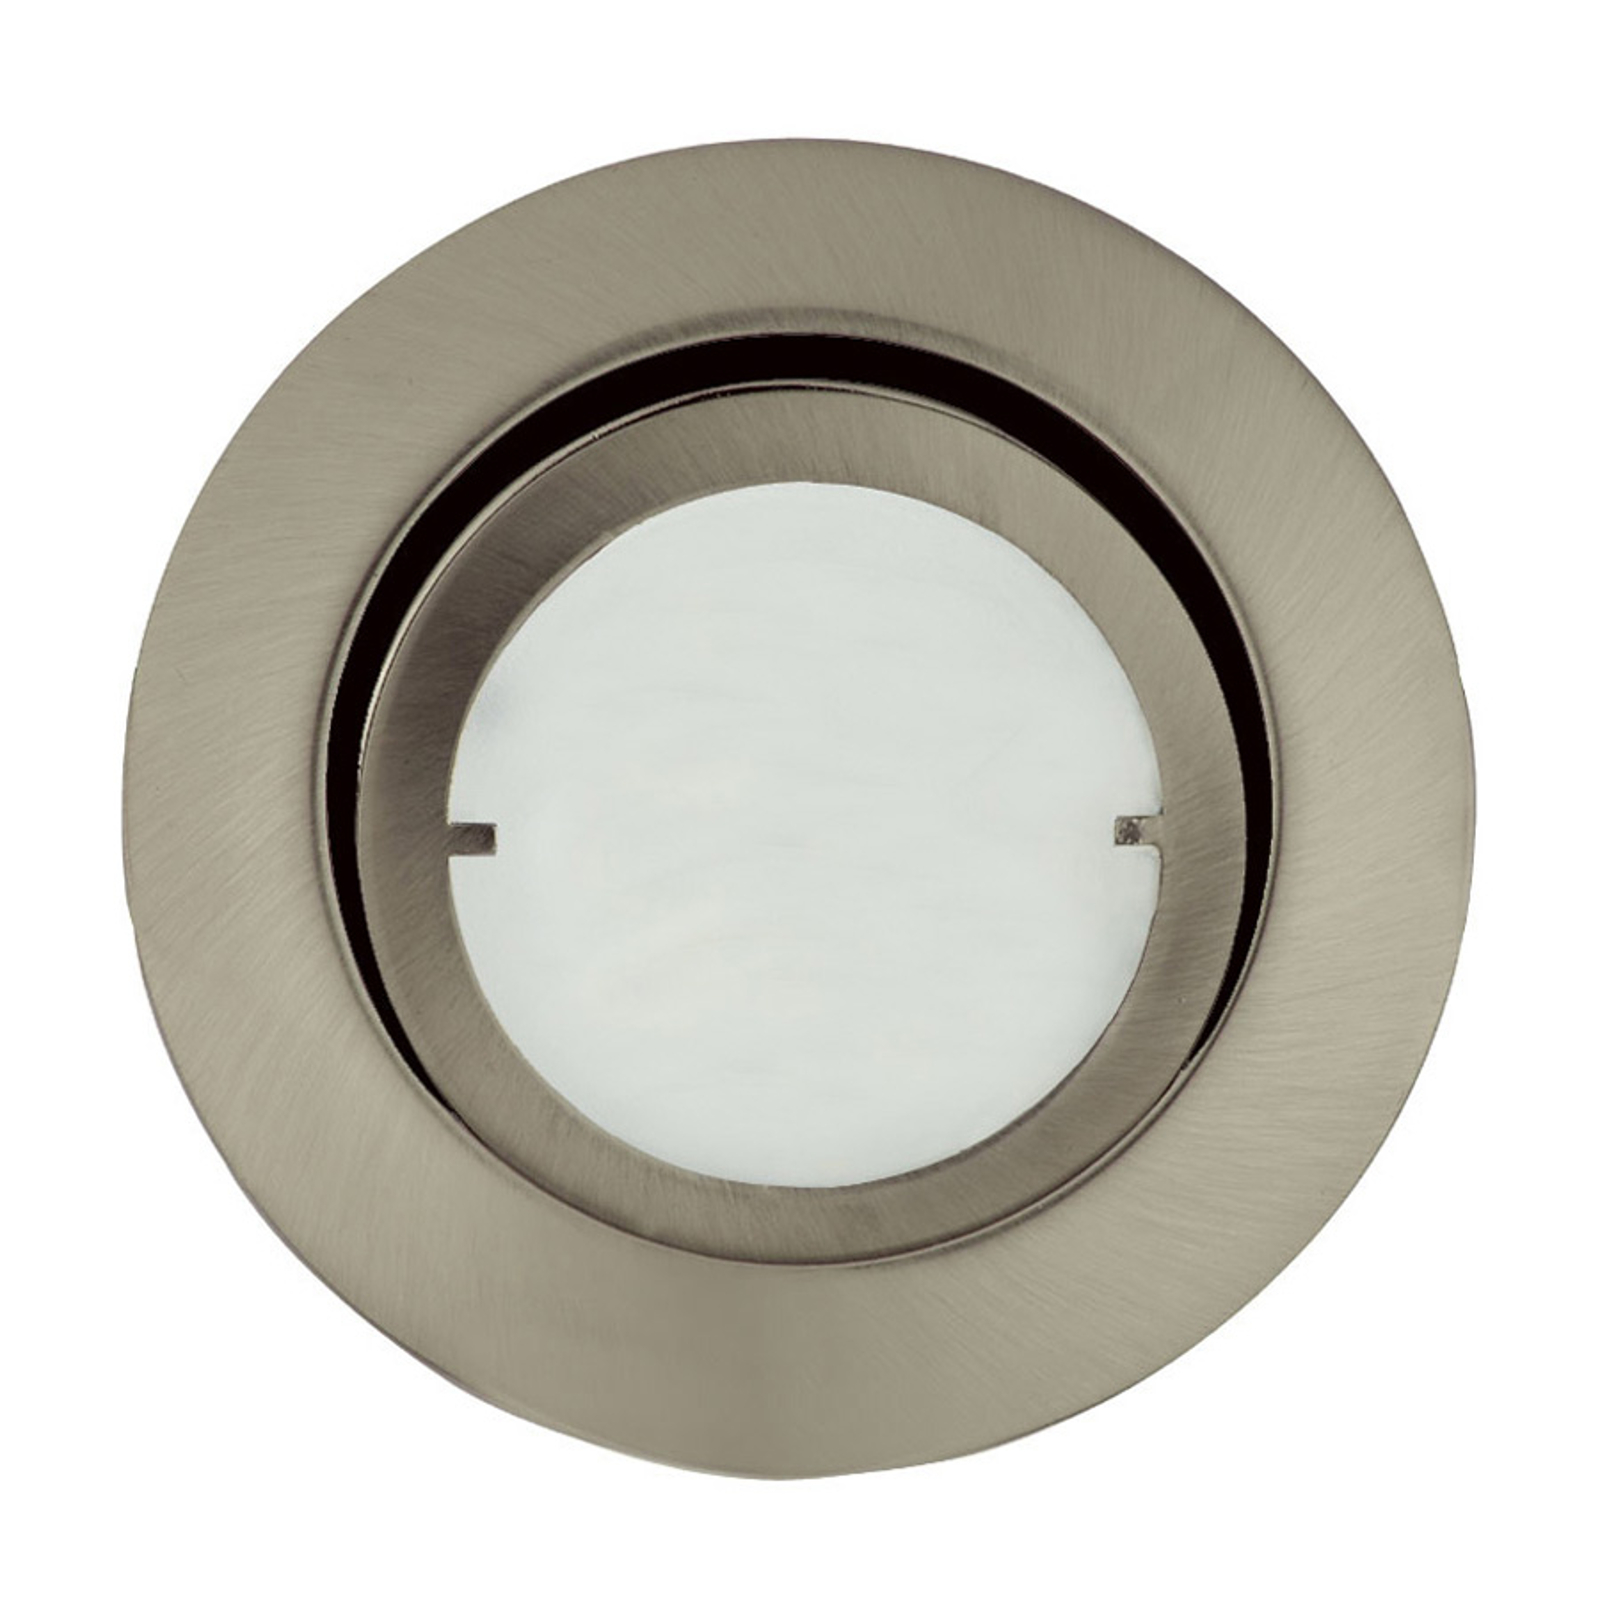 Recessed light Joanie with LED, brushed iron_1524122_1